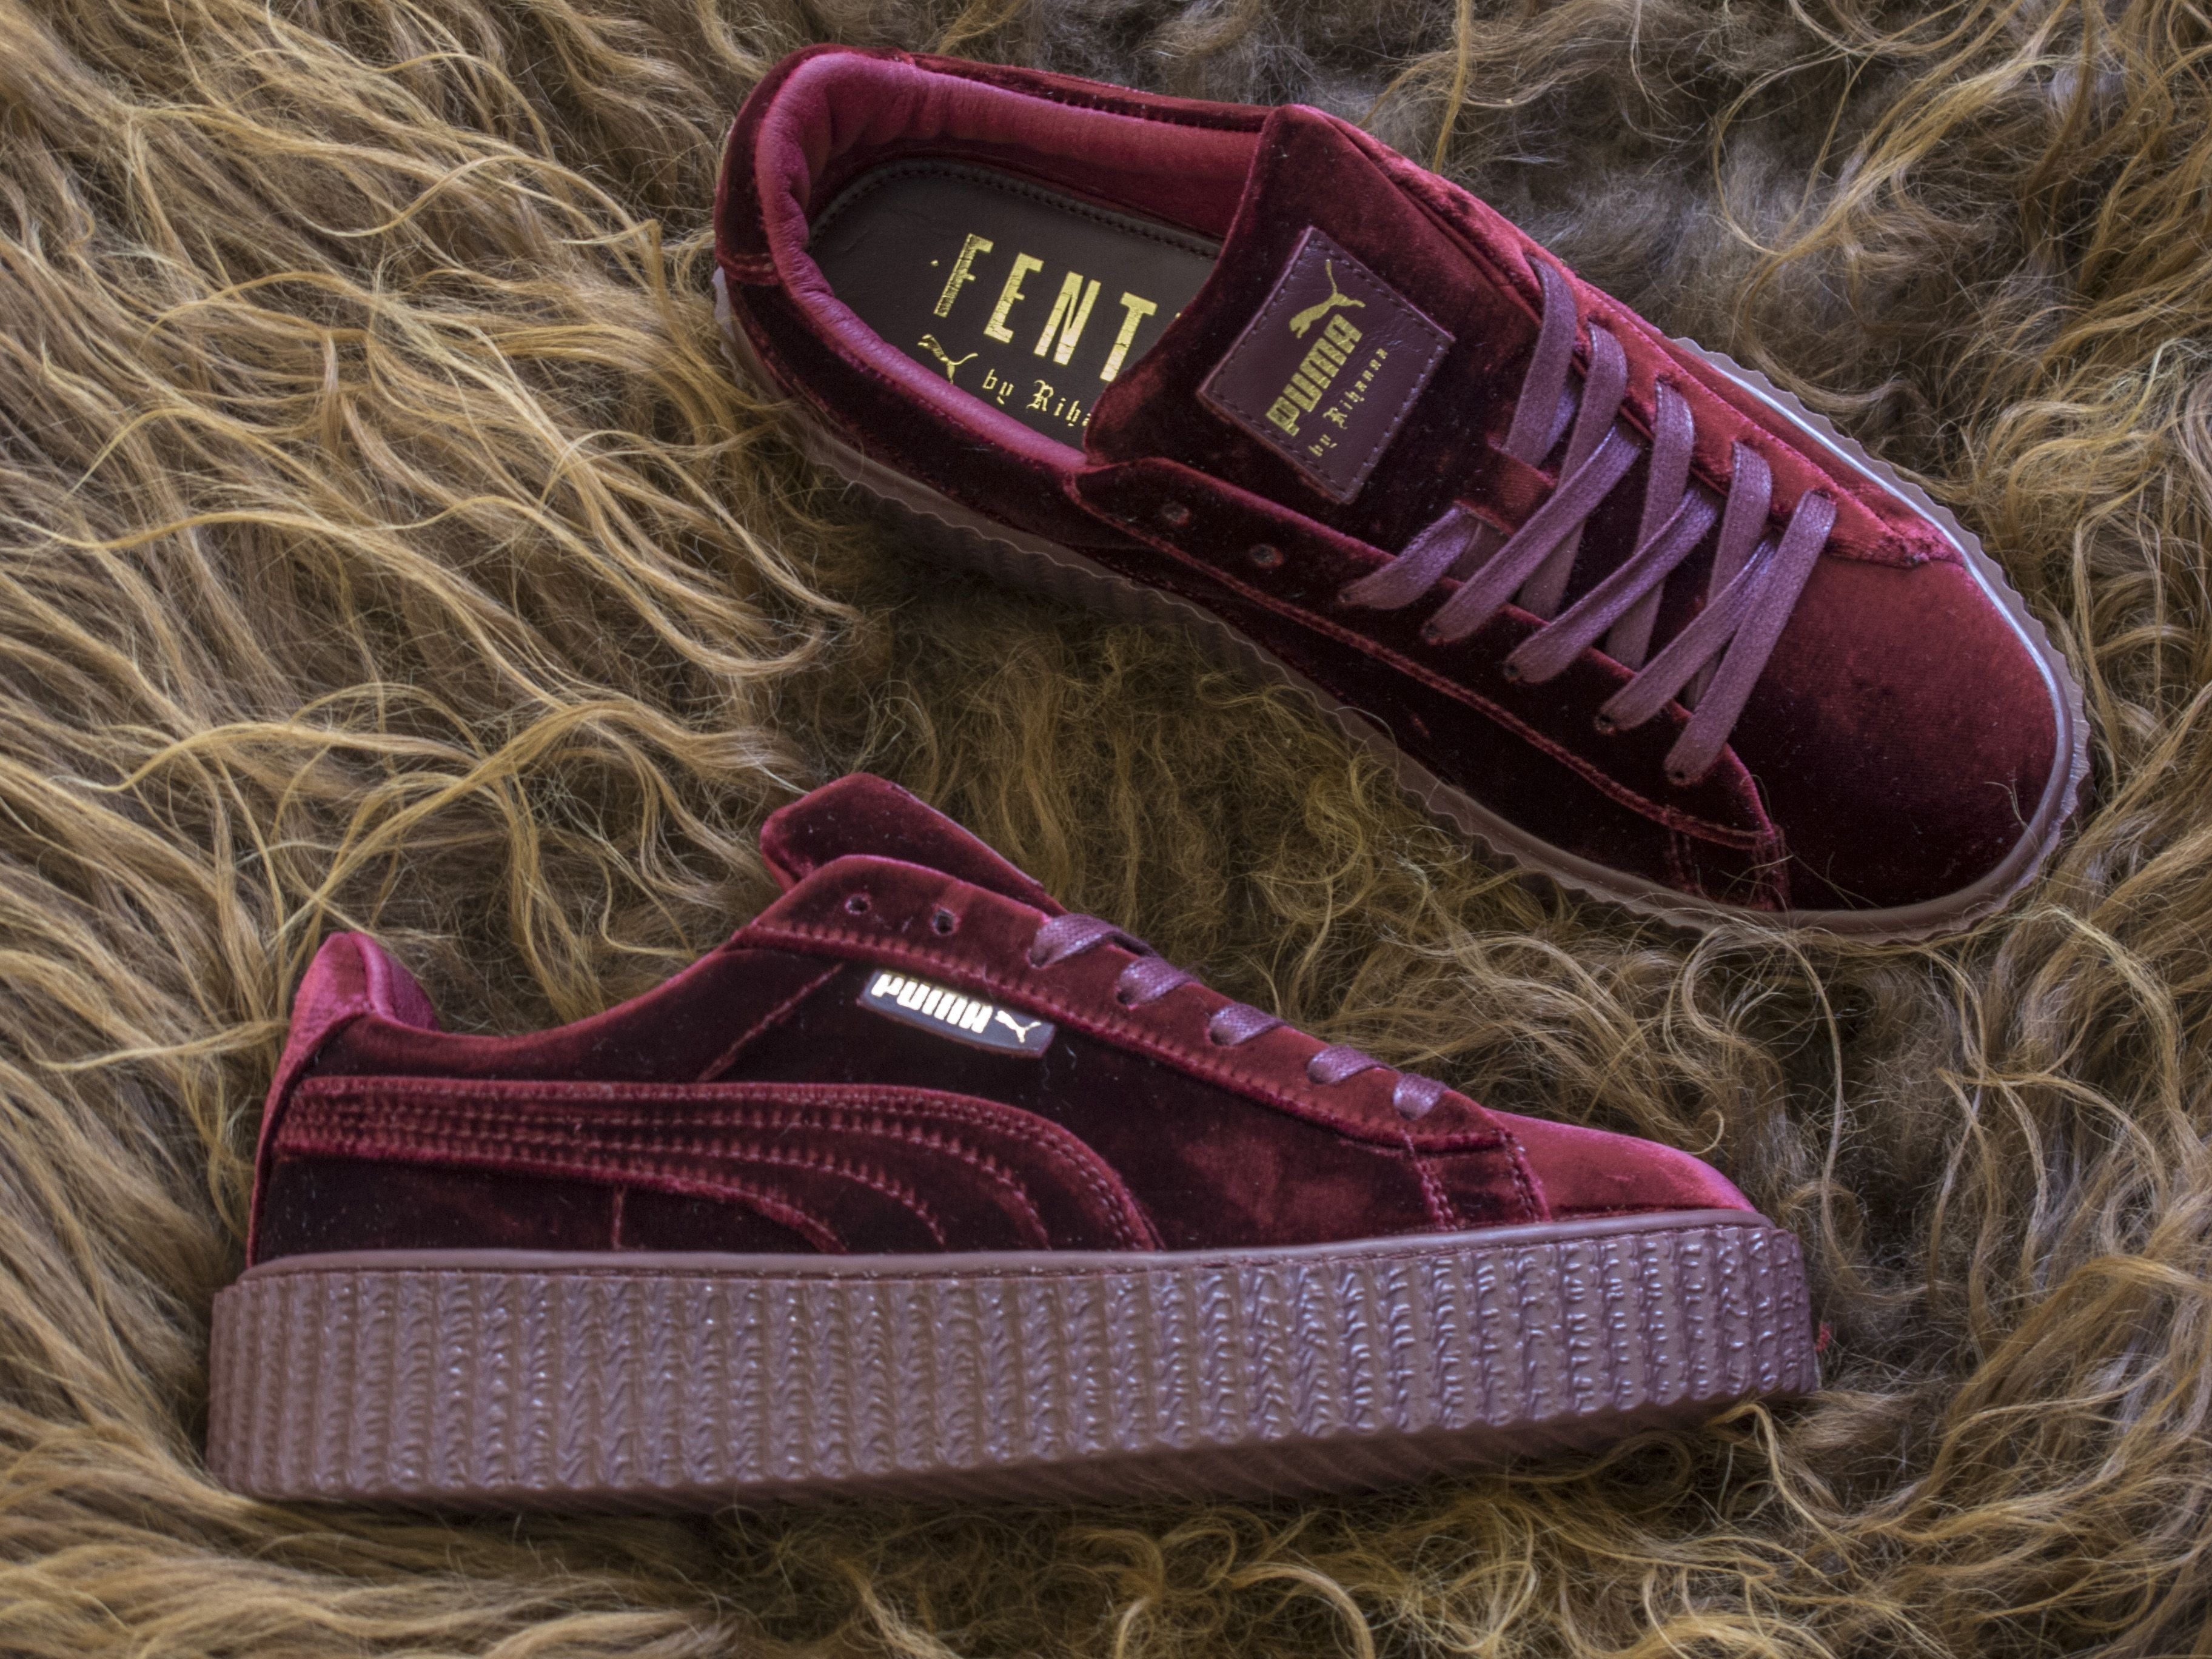 030b67ae70a5 Watch out for fake Puma Rihanna Creepers - Velvet when you shop online. Get  a 29 point step-by-step guide on spotting fakes from goVerify before it s  too ...